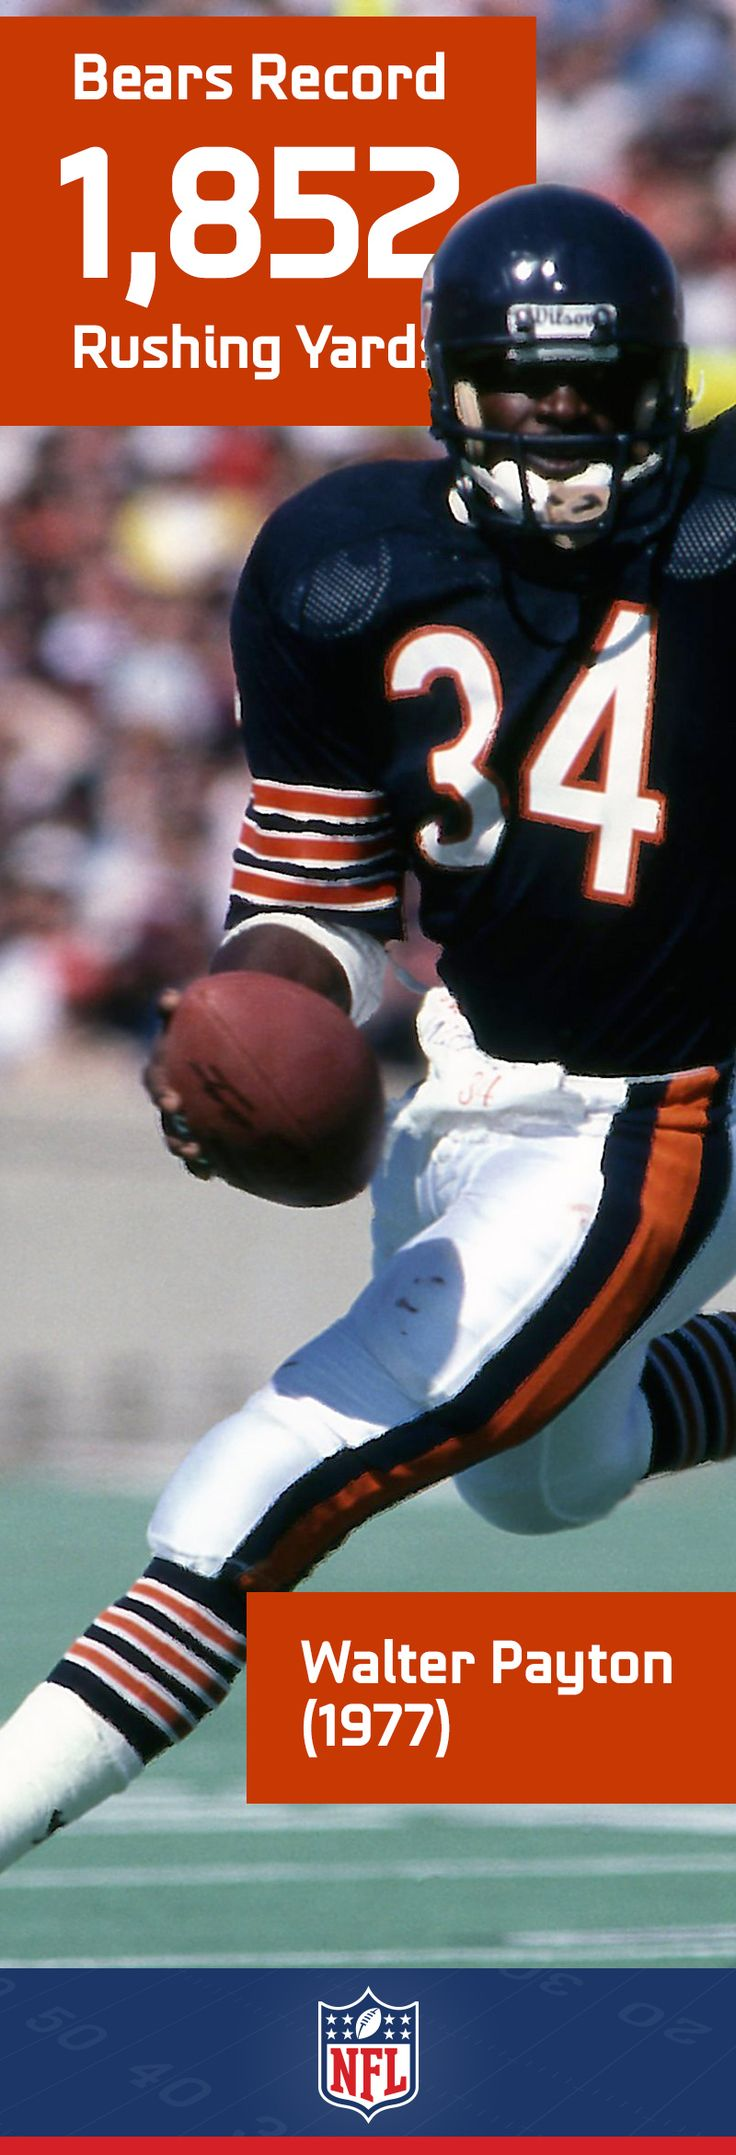 Walter Payton is one the NFL's all-time greats, a legend in every sense of the word. His 1,852 yard rushing performance in 1977 earned him one of many Chicago Bears records.